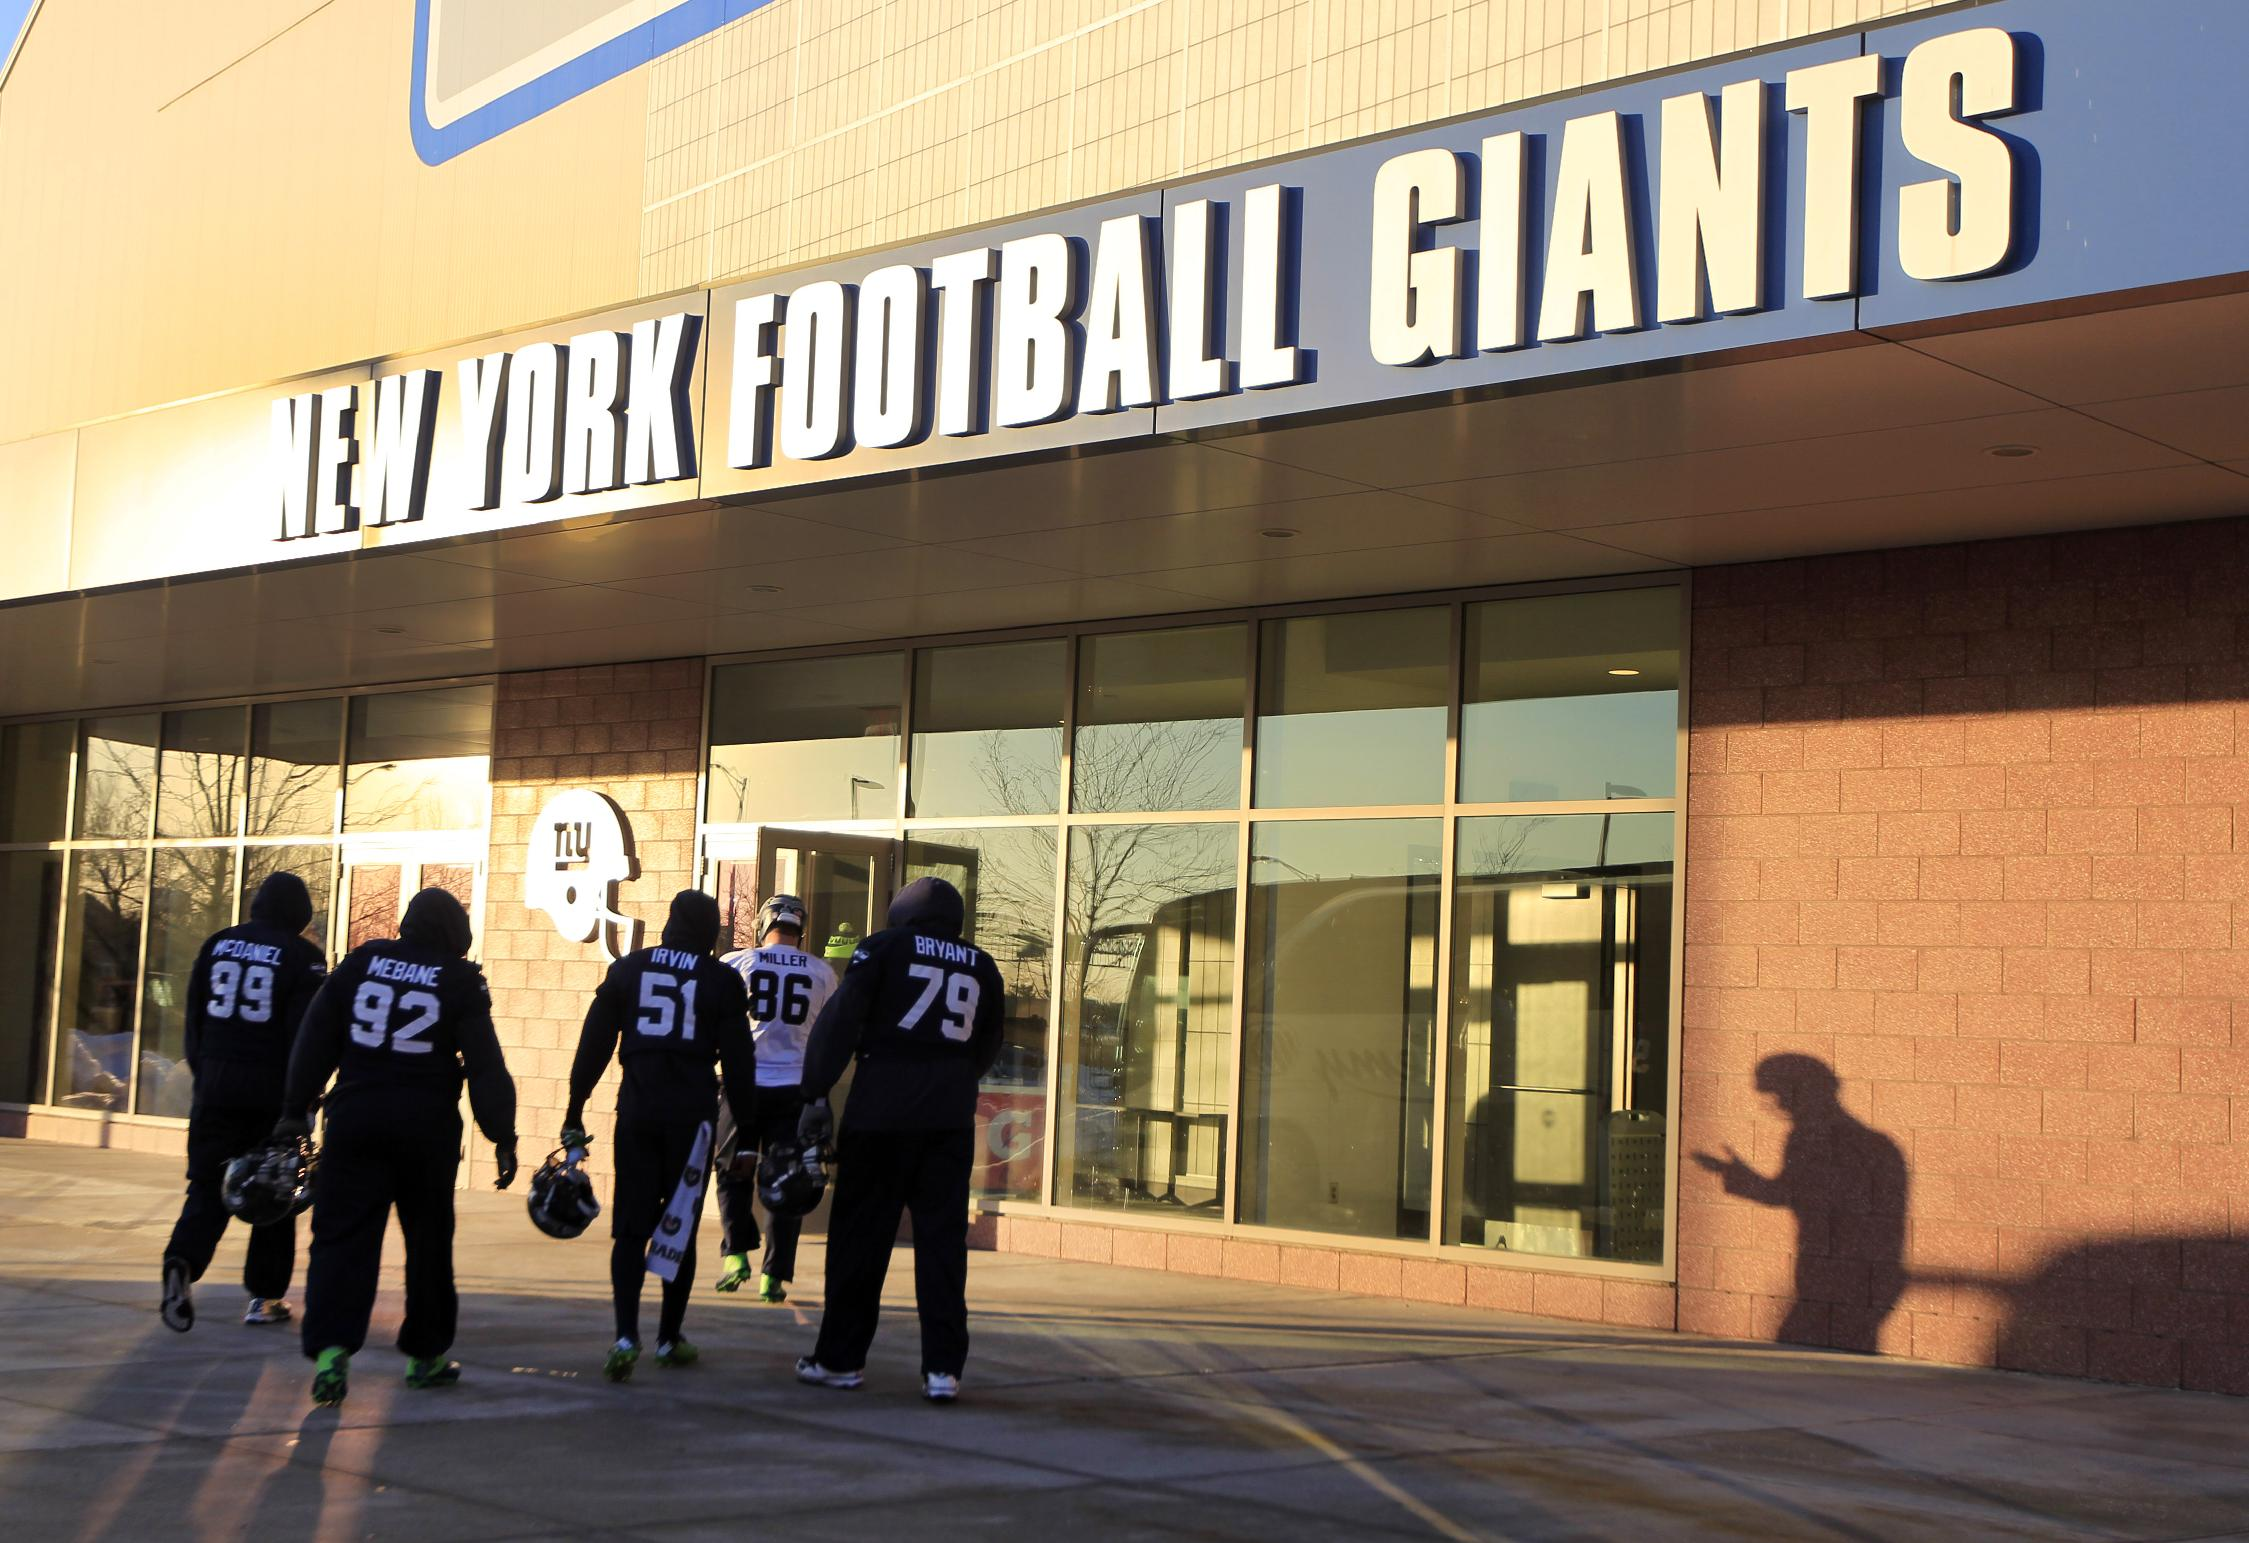 Members of the Seattle Seahawks head to the New York Giants indoor facility for NFL football practice Thursday, Jan. 30, 2014, in East Rutherford, N.J. The Seahawks and the Denver Broncos are scheduled to play in the Super Bowl XLVIII football game Sunday, Feb. 2, 2014. (AP Photo)